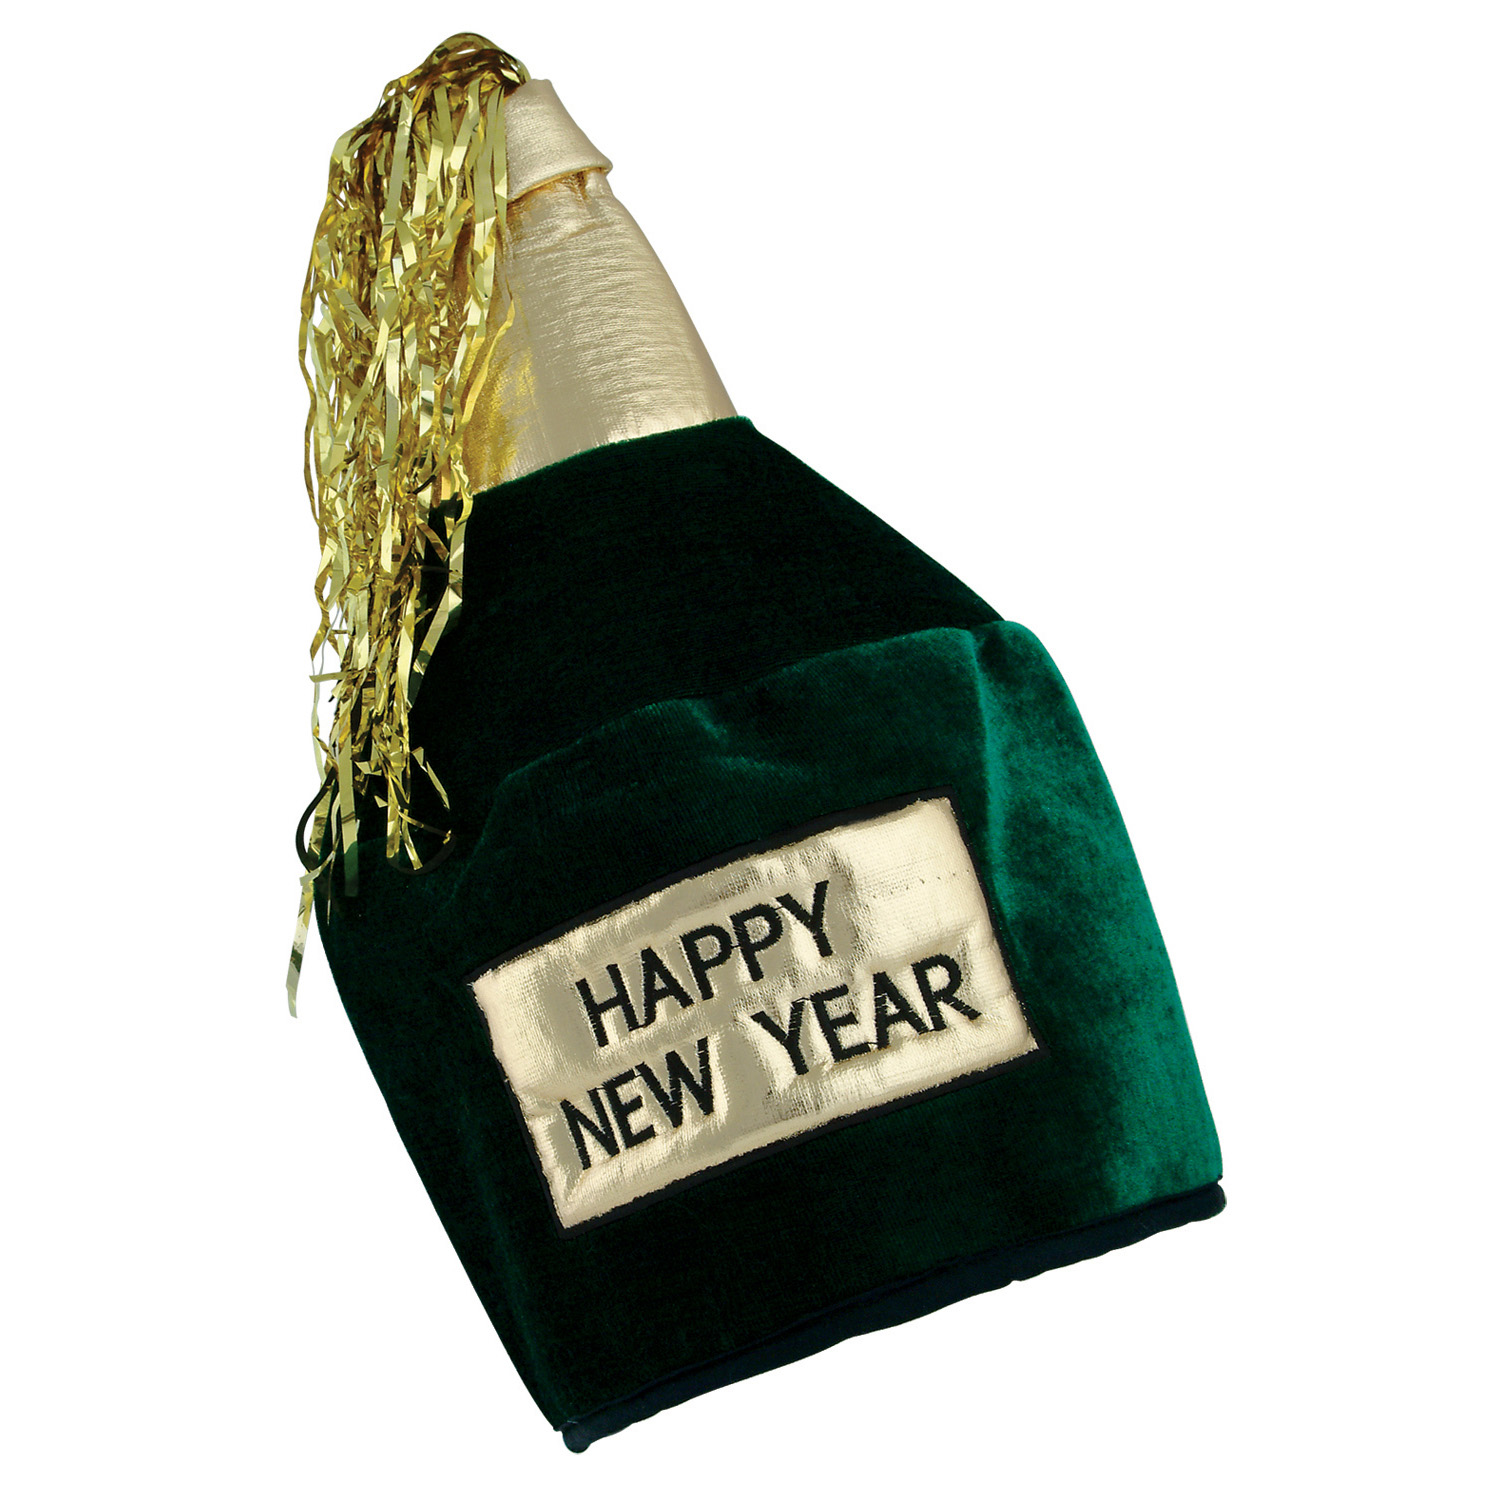 12 Units of HNY Bottle Head Hat one size fits most - Party Hats & Tiara